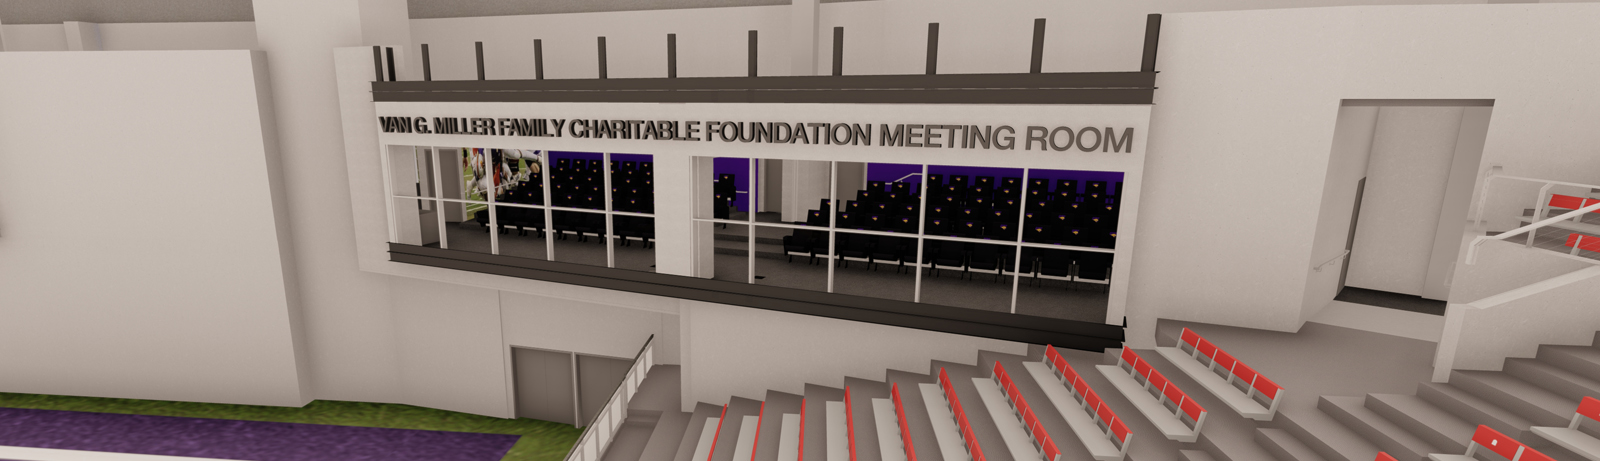 The Van G. Miller Family Charitable Foundation Meeting Room as seen from the UNI-Dome